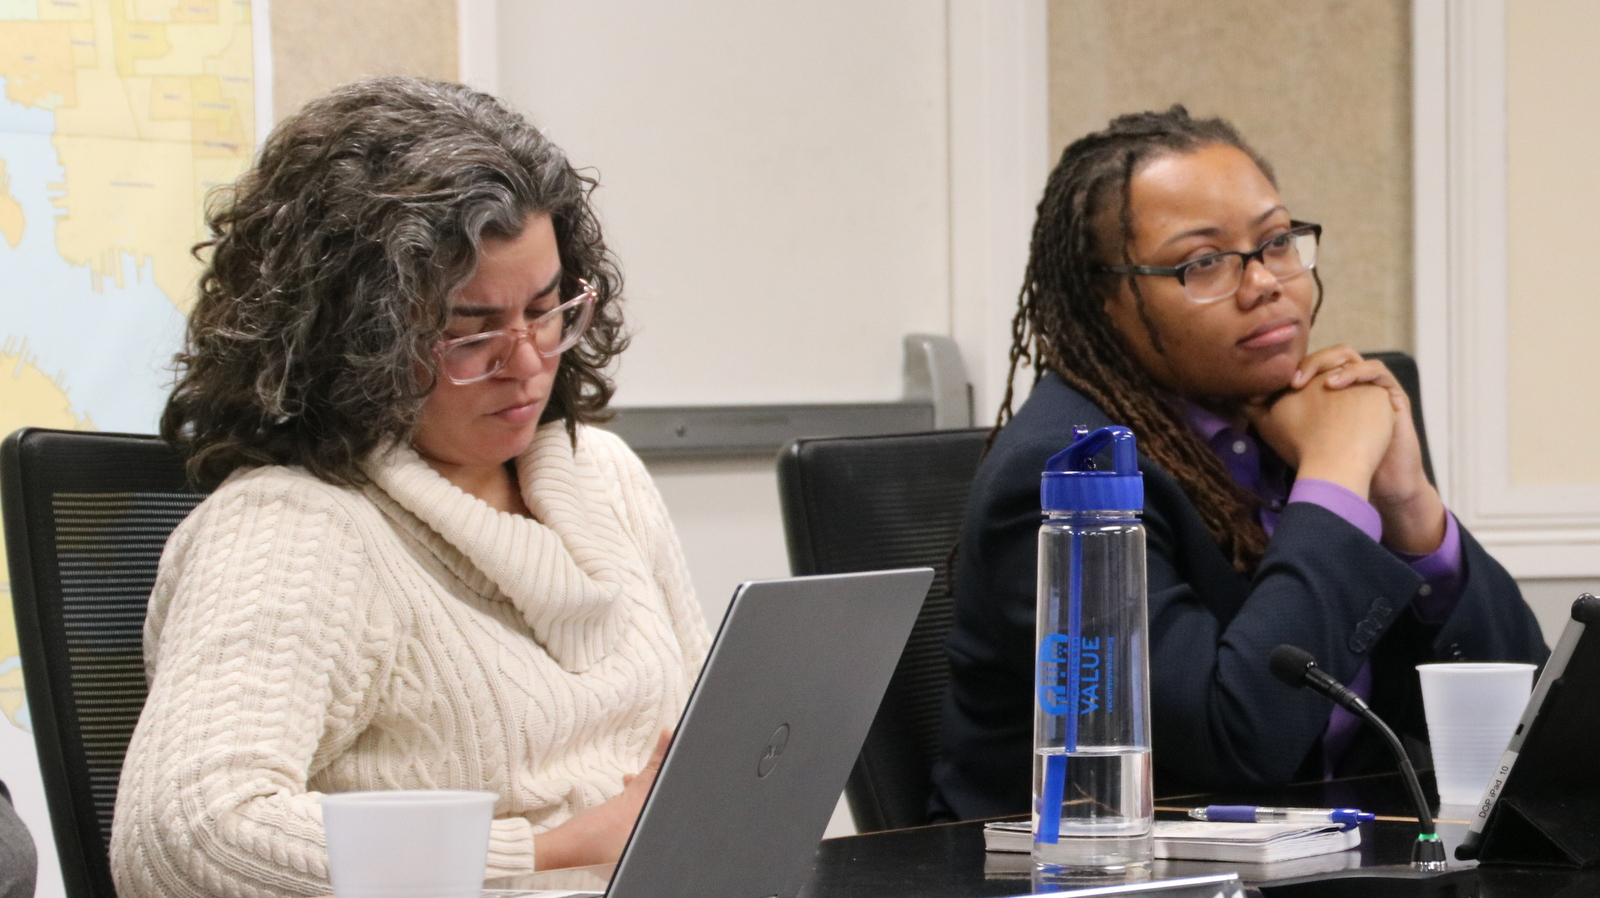 CHAP member Monica Rhodes (right) questioned whether community members had been fully engaged in plans for the redevelopment. (Fern Shen)